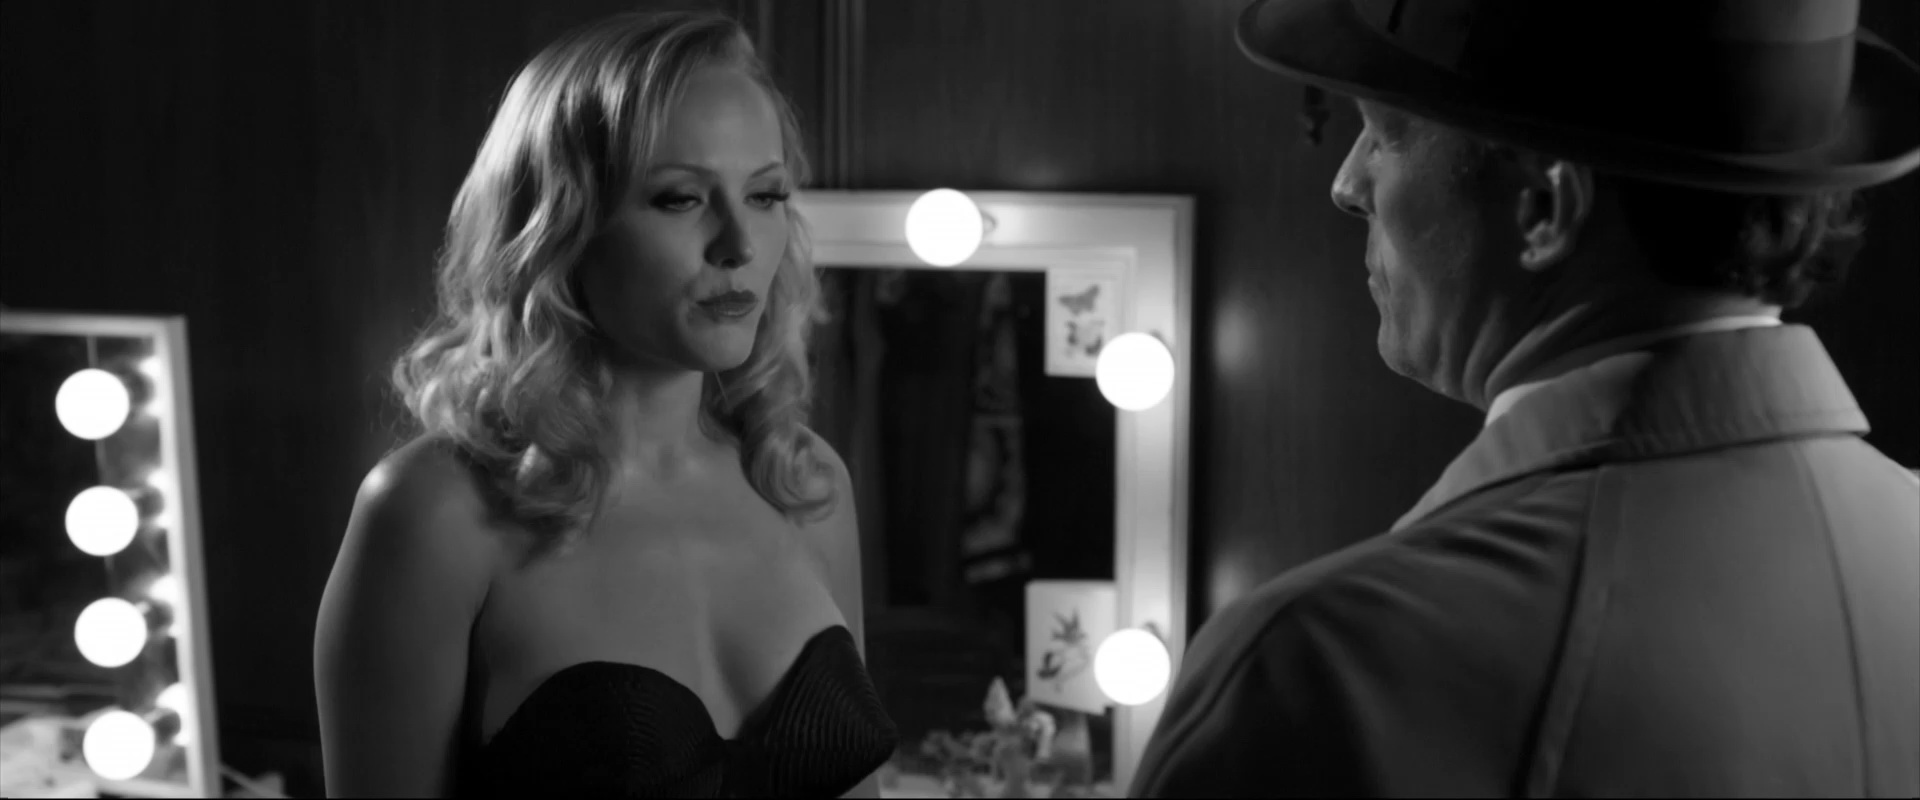 Malin Akerman – Hotel Noir (2012) HD 1080p